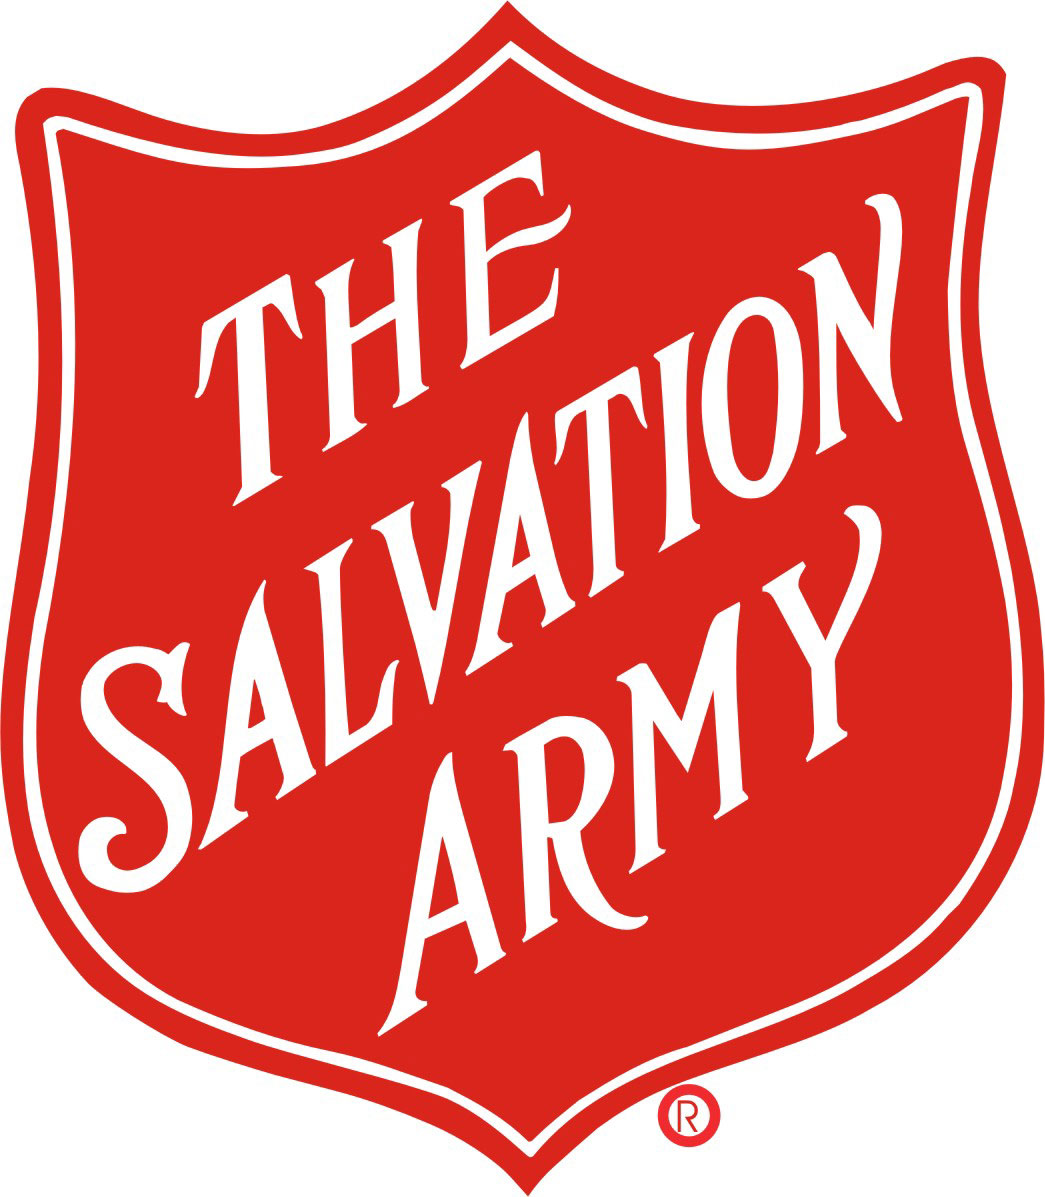 Salvation Army Shield Clip Art http://www.pic2fly.com/Salvation+Army+Shield+Clip+Art.html